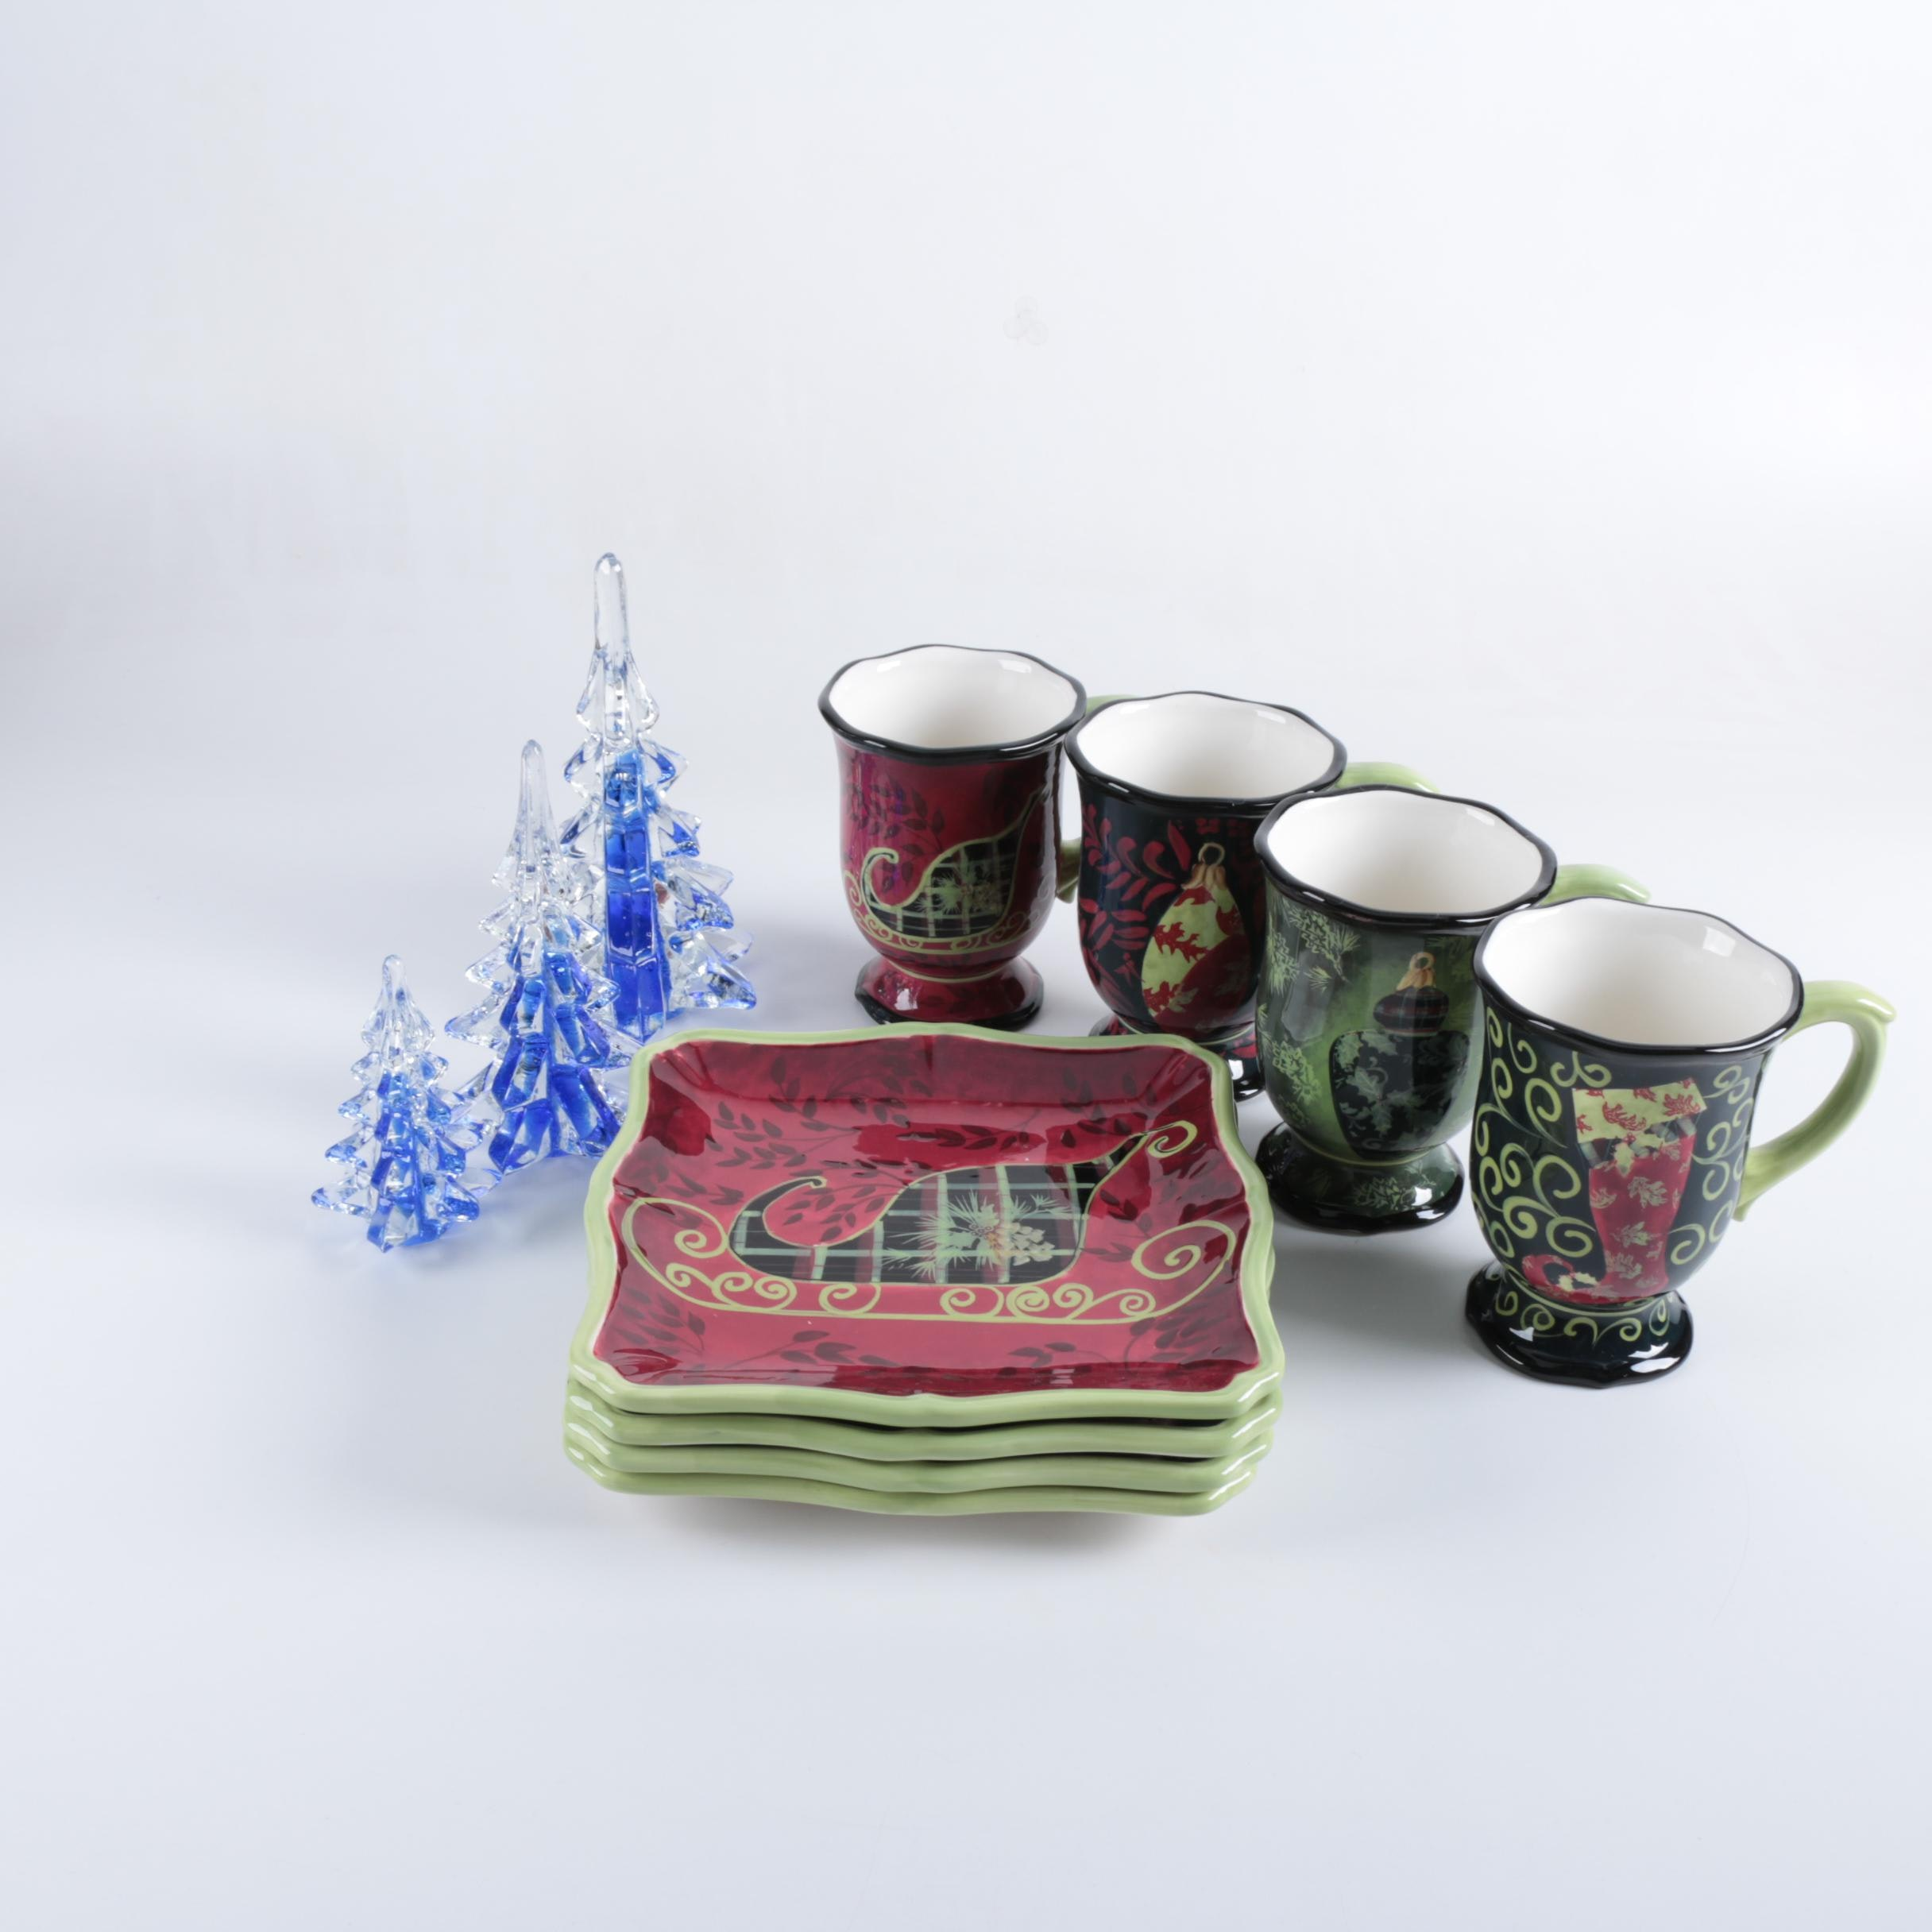 Christmas Themed Tableware and Figurines